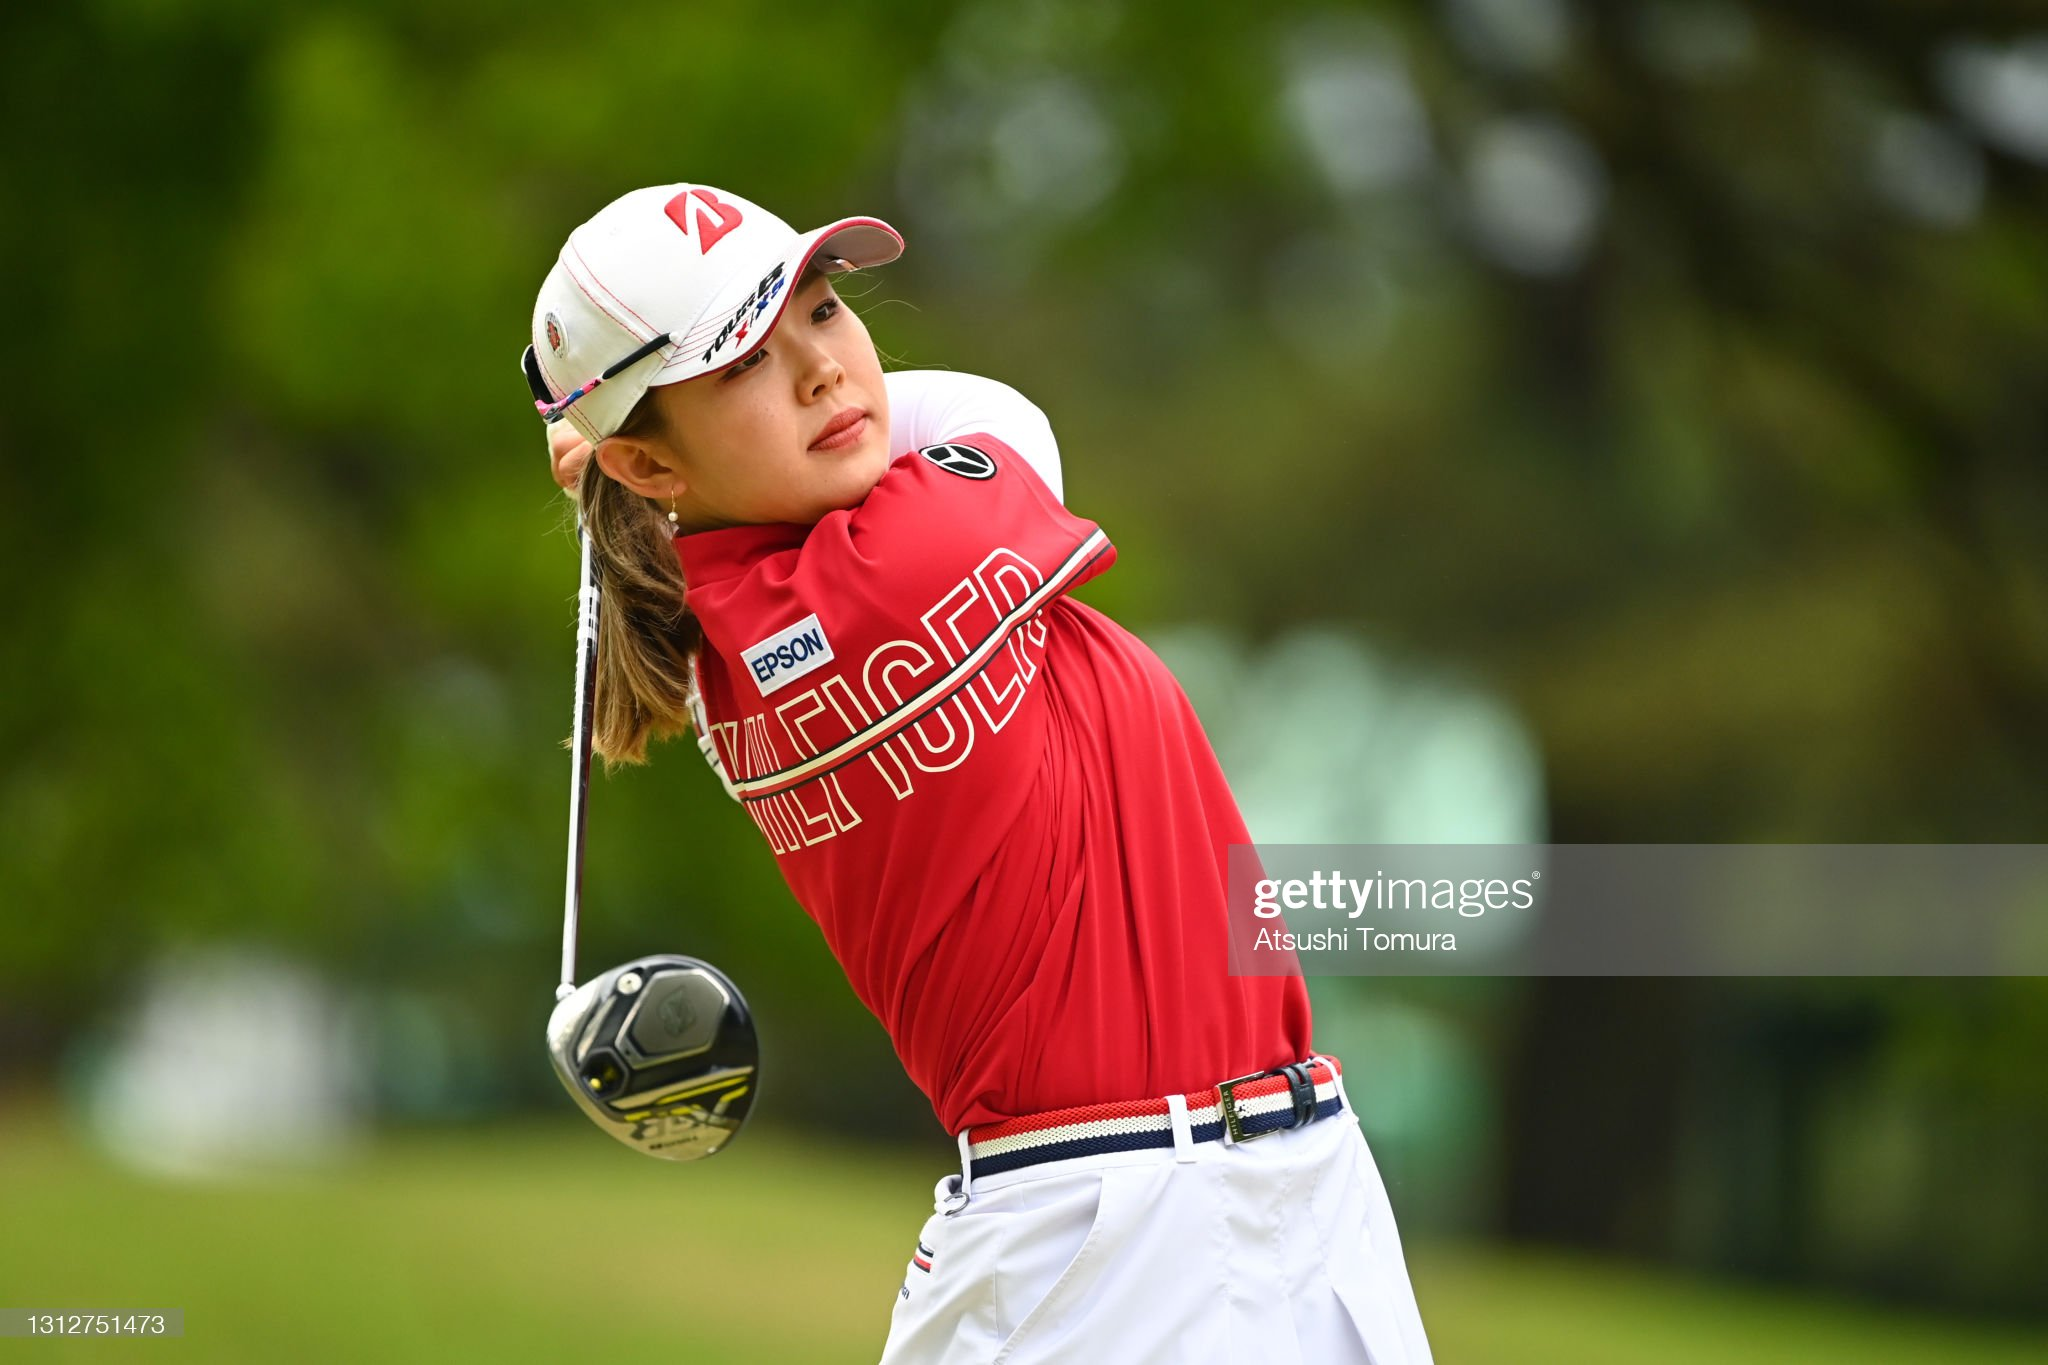 https://media.gettyimages.com/photos/yuri-yoshida-of-japan-hits-her-tee-shot-on-the-17th-hole-during-the-picture-id1312751473?s=2048x2048